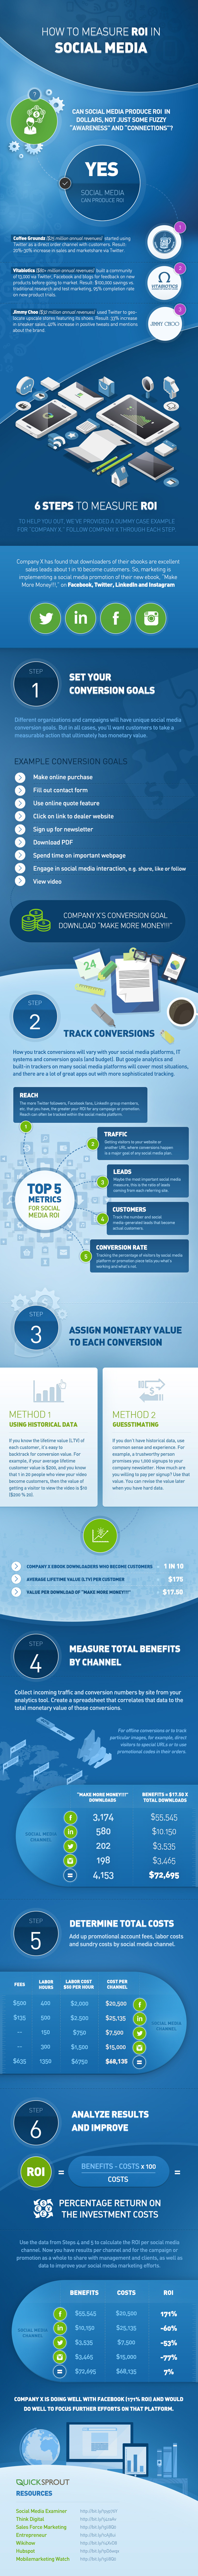 How to Measure ROI in Social Media [Infographic]